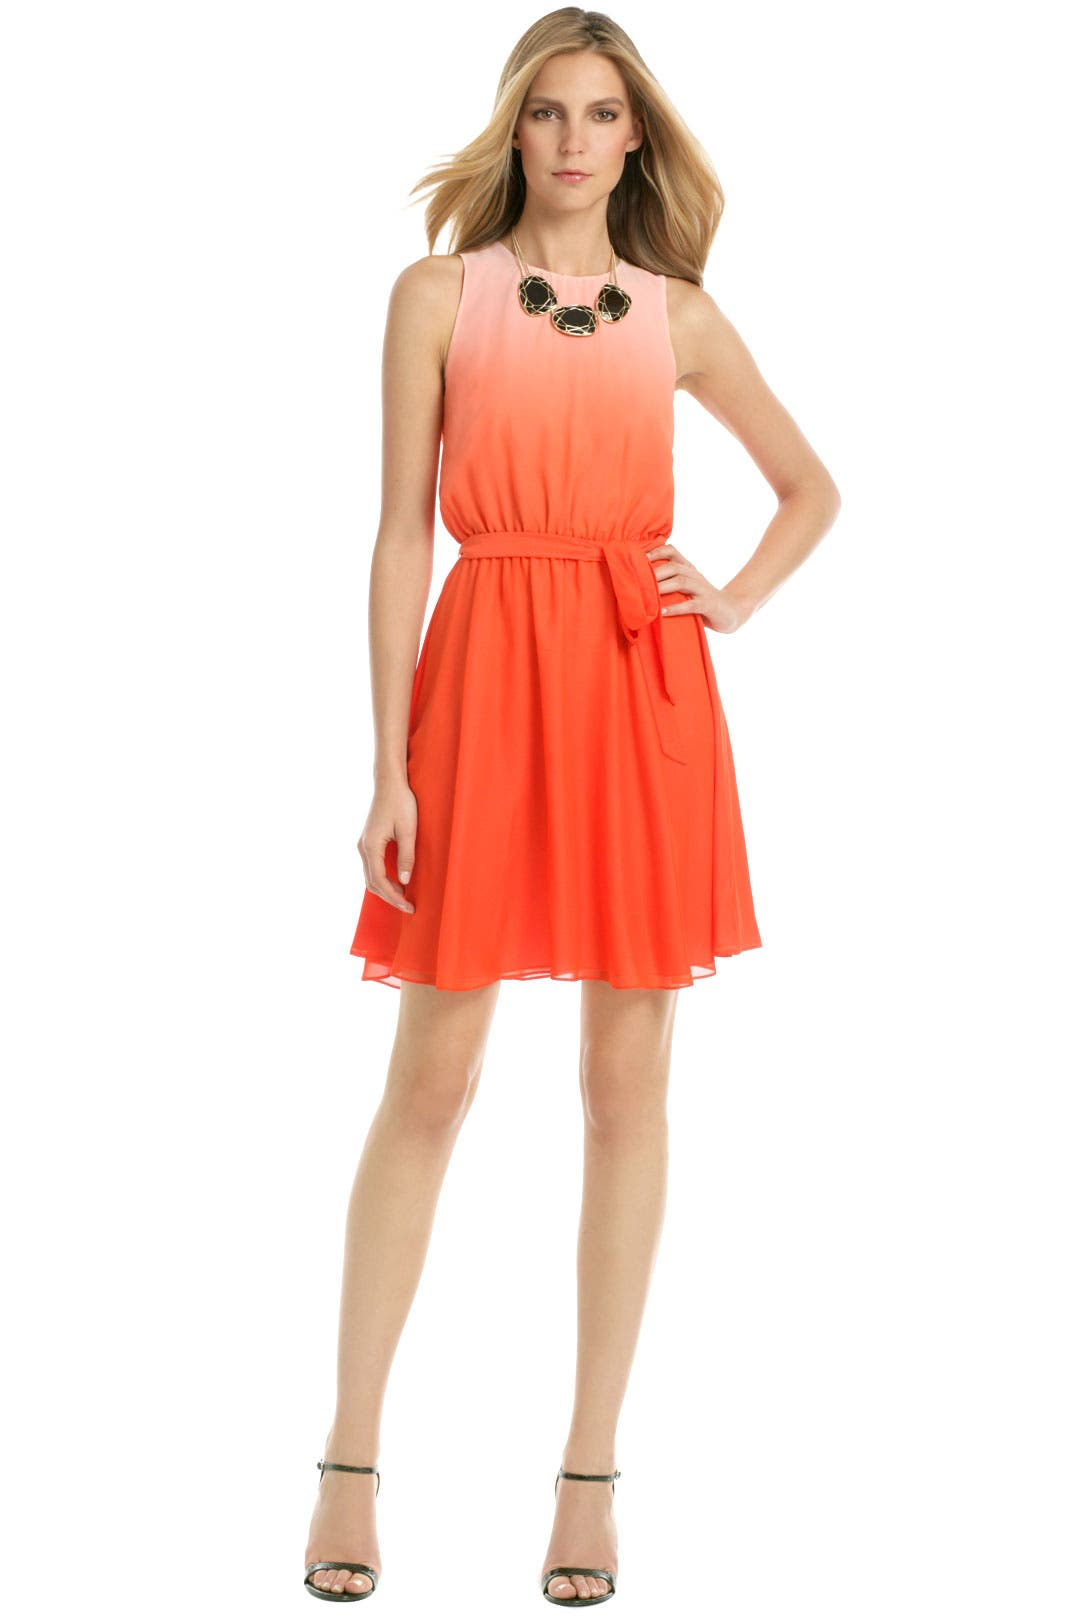 Malibu Orange Crush Dress by ERIN erin fetherston